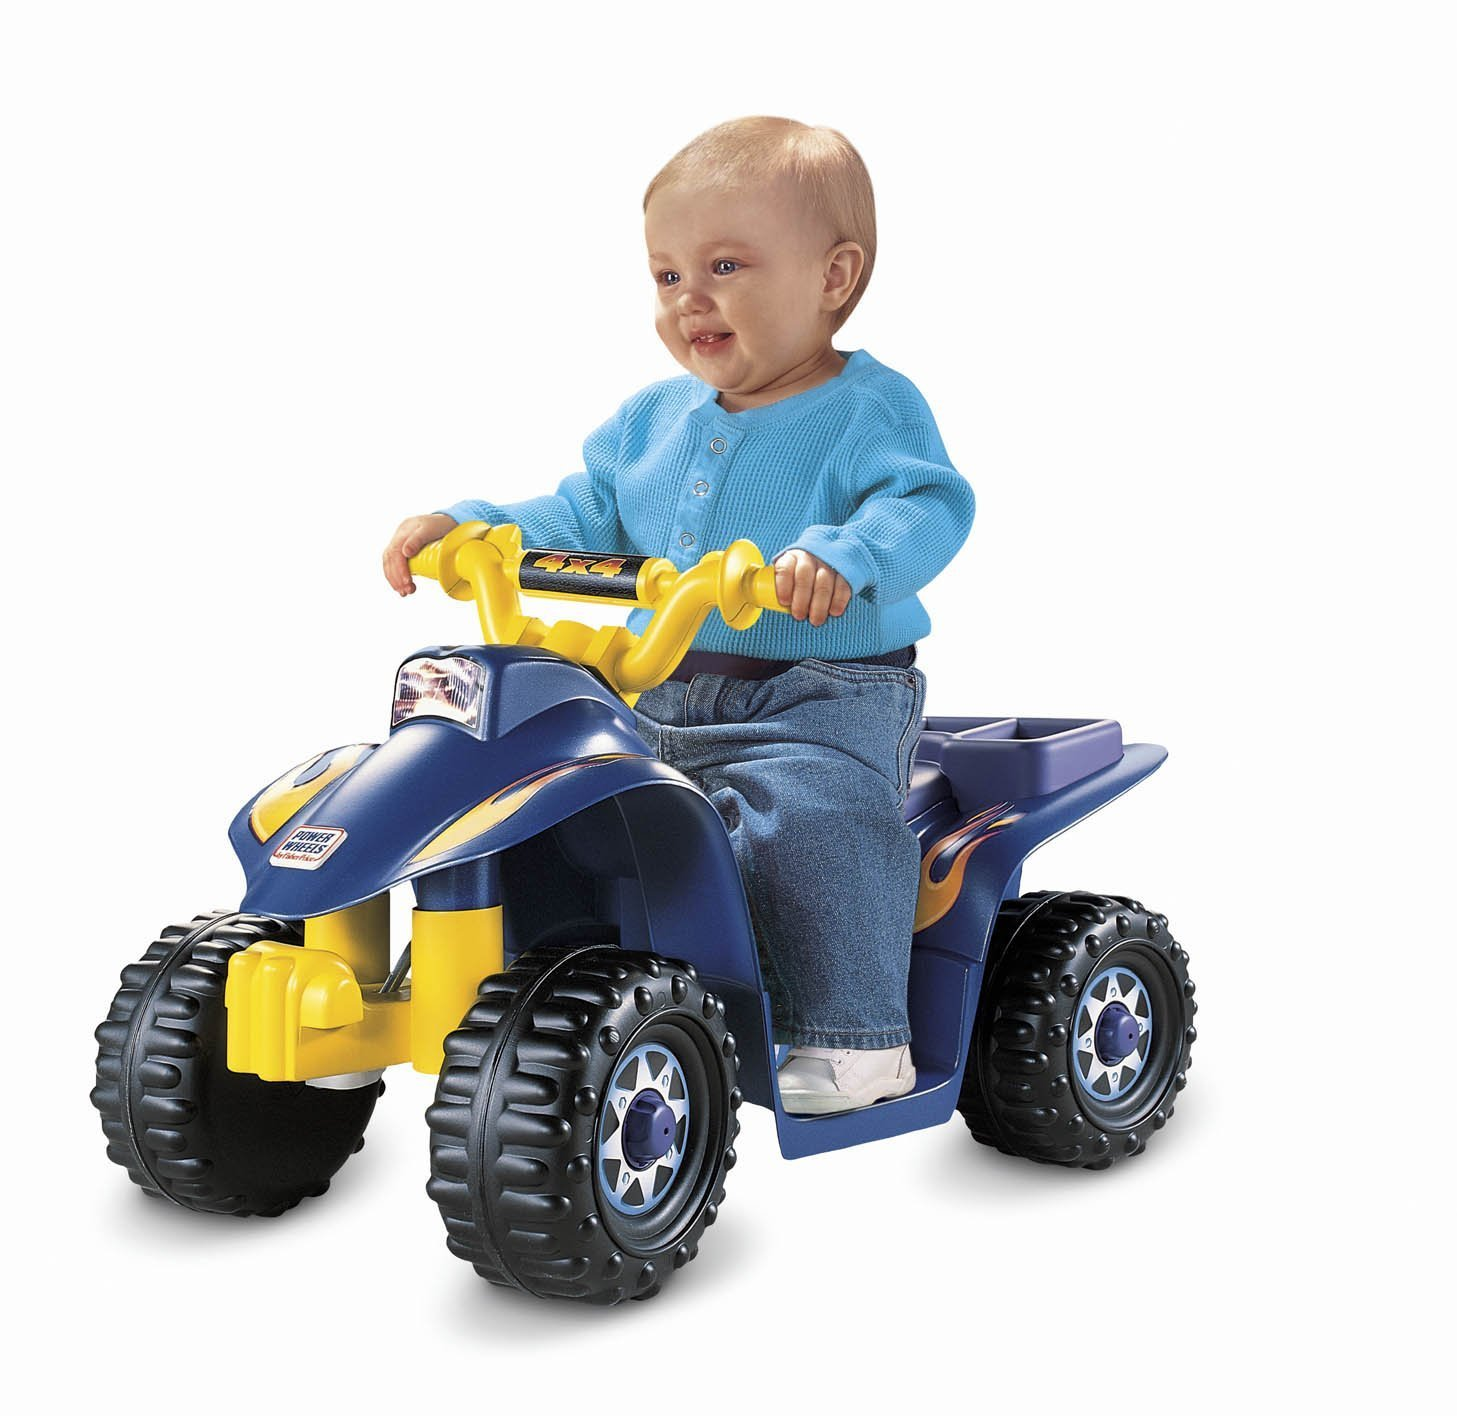 Hot Christmas Gifts Best Toys for Baby Boys Age 1 2 — Kathln